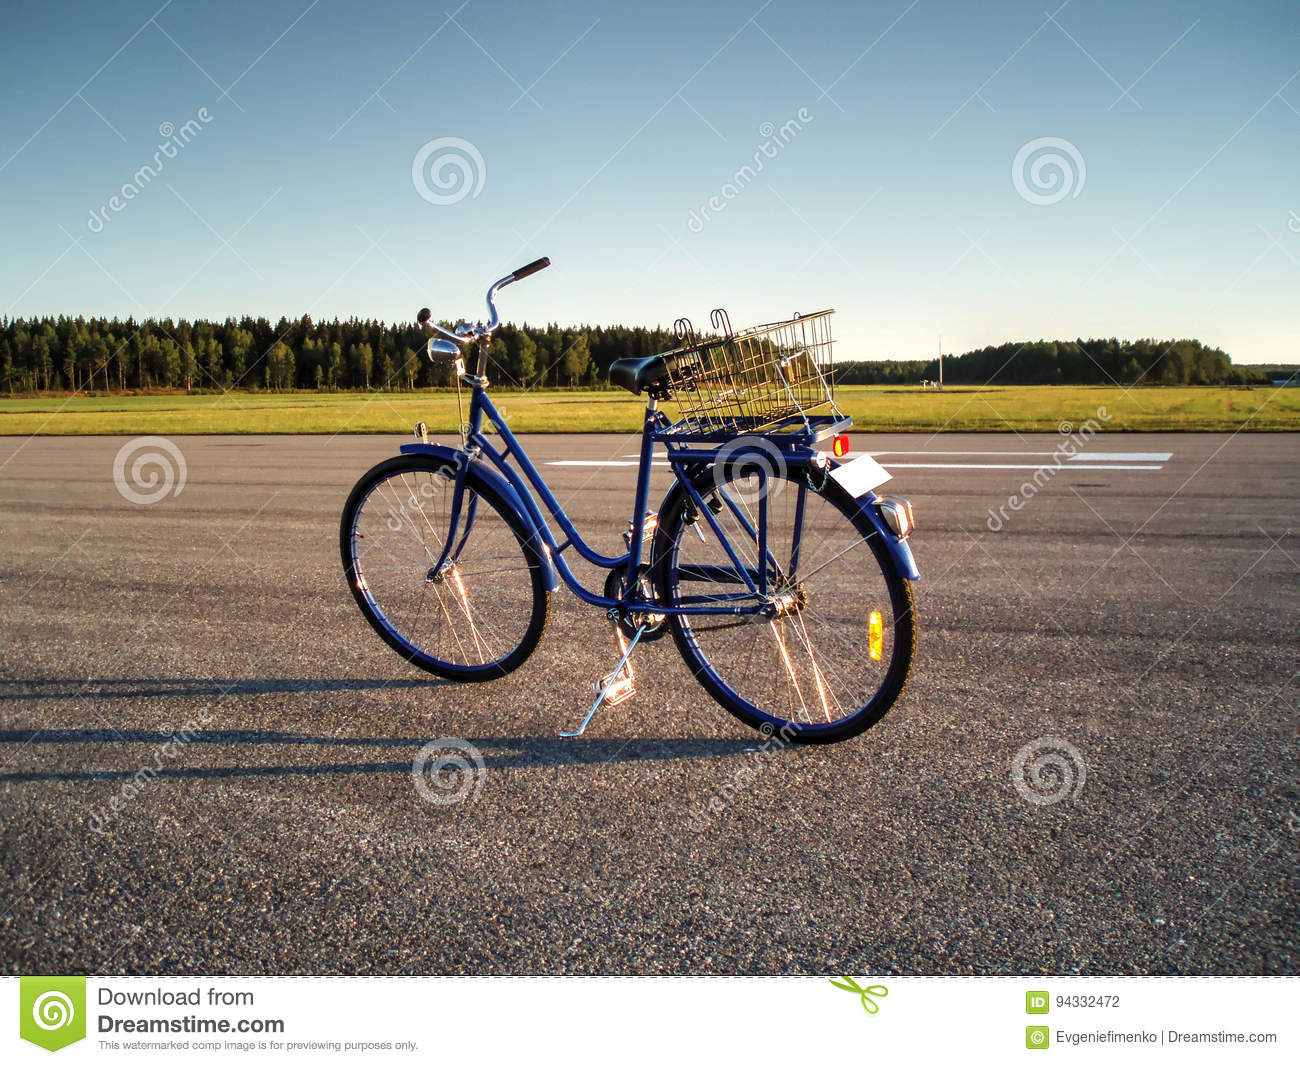 Download Bicycle stock photo. Image of green, bicycle, airbase - 94332472